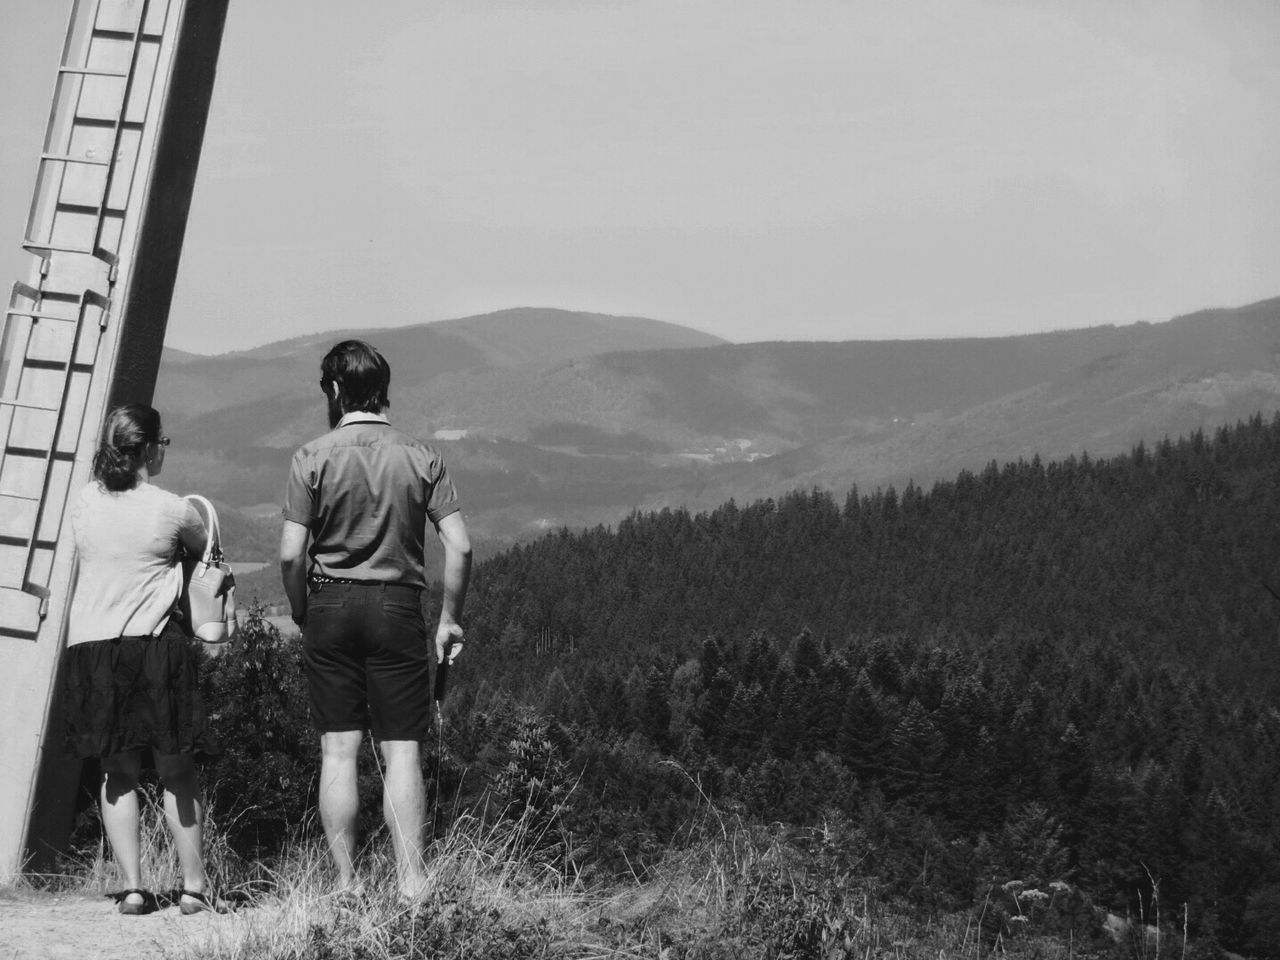 togetherness, rear view, mountain, nature, real people, full length, men, casual clothing, pets, two people, leisure activity, friendship, day, standing, dog, sky, outdoors, lifestyles, beauty in nature, bonding, grass, mammal, adult, people